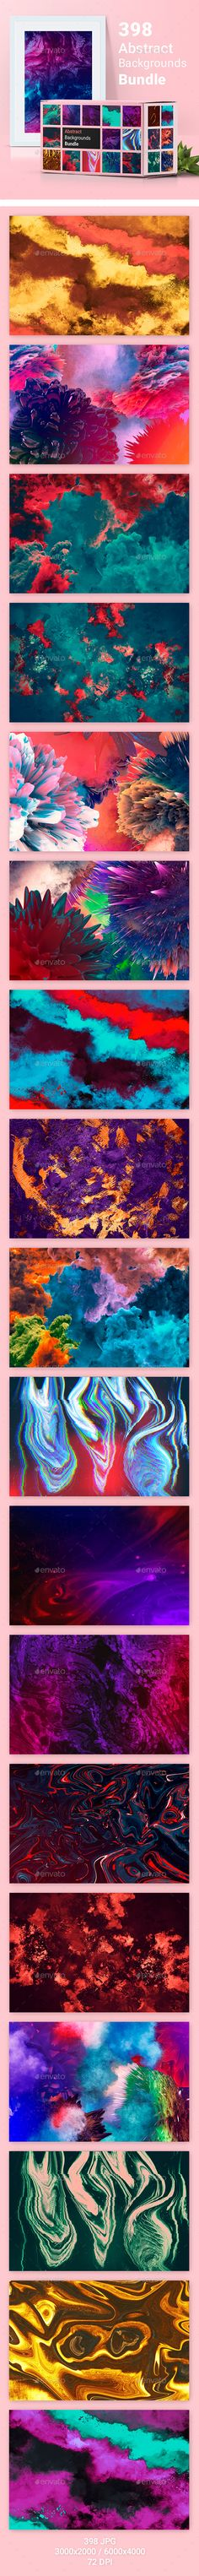 398 Abstract Backgrounds Bundle by kauster- 398 Abstract Backgrounds Bundle Bundle includes 8 high quality and tested by time graphicriver files. There are 398 backgrounds to